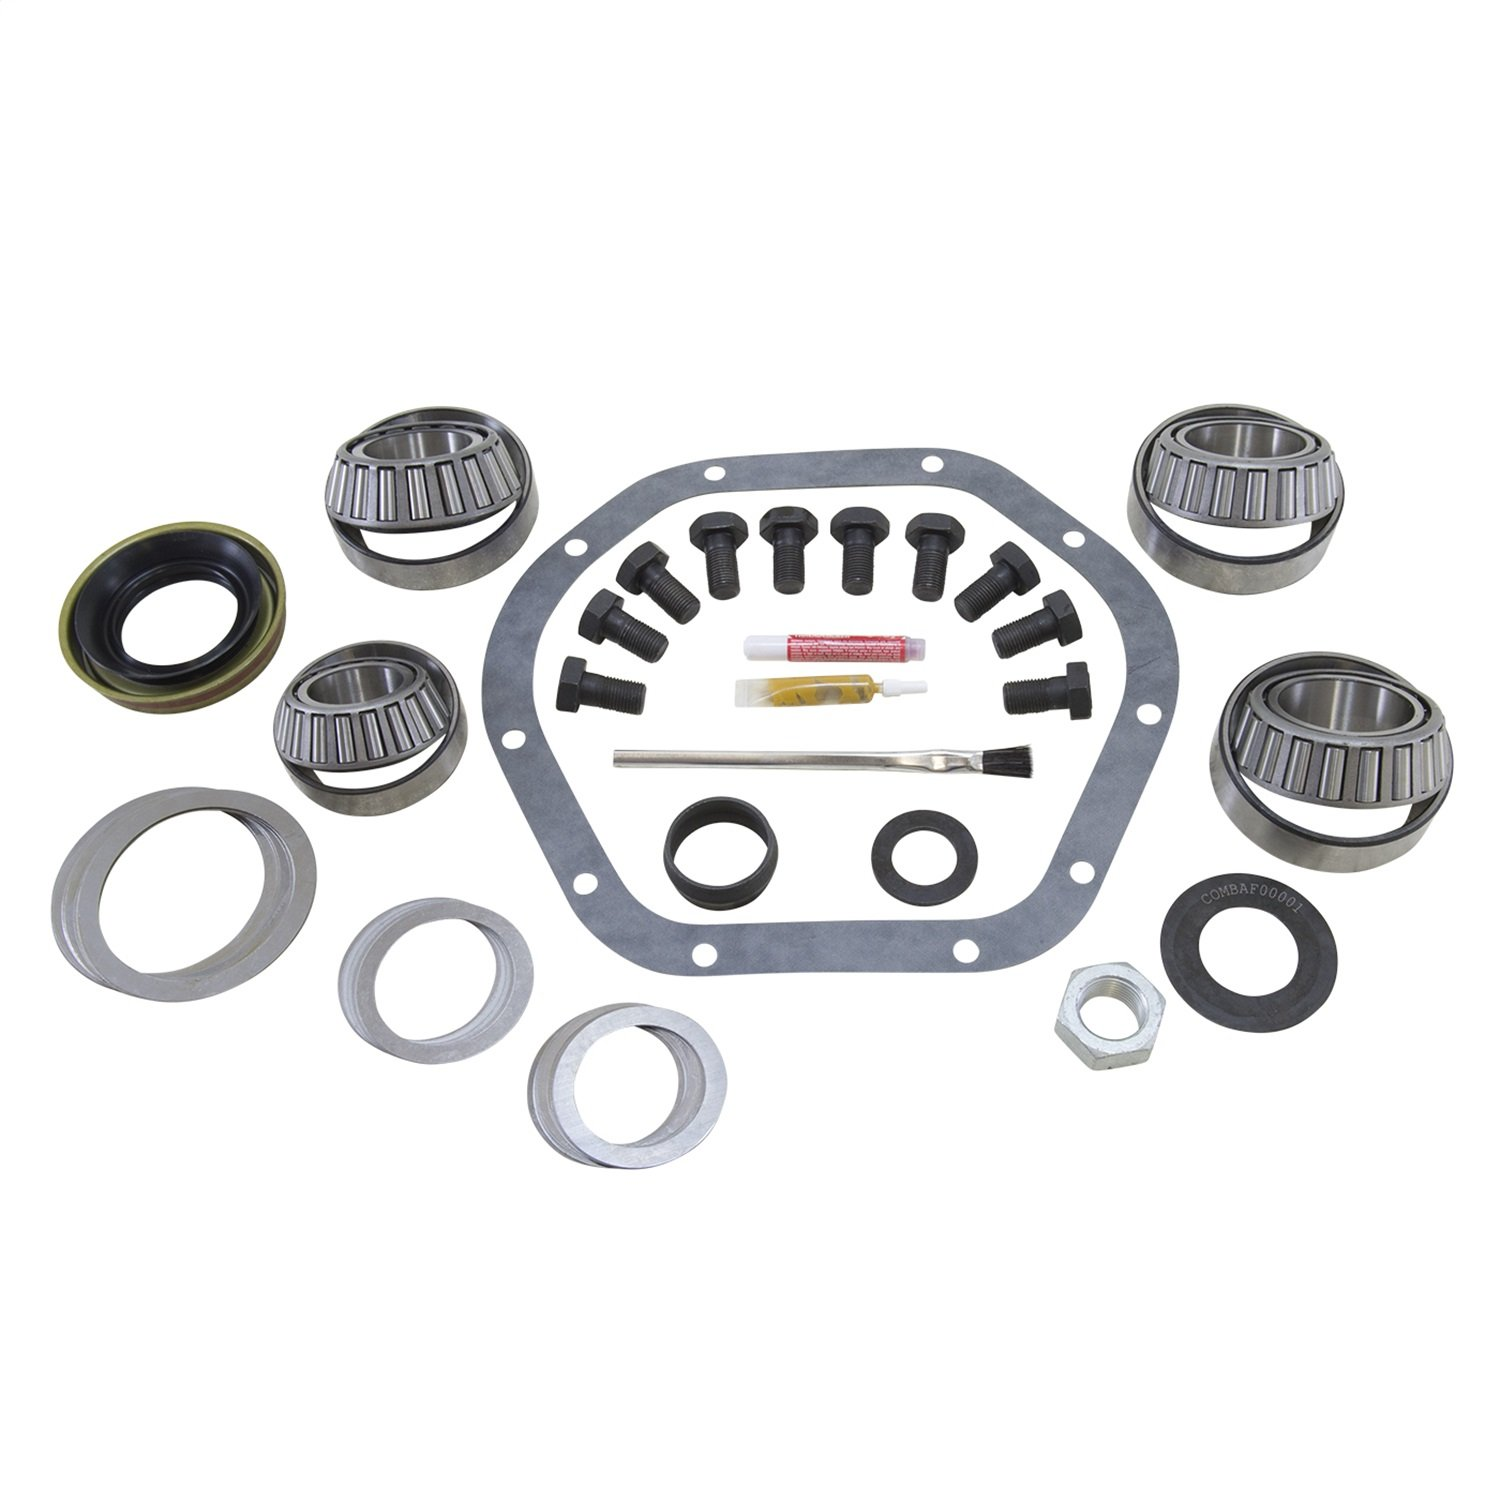 Yukon YKD44-REAR Master Overhaul Kit for Dana 44 Axle with 30 Spline